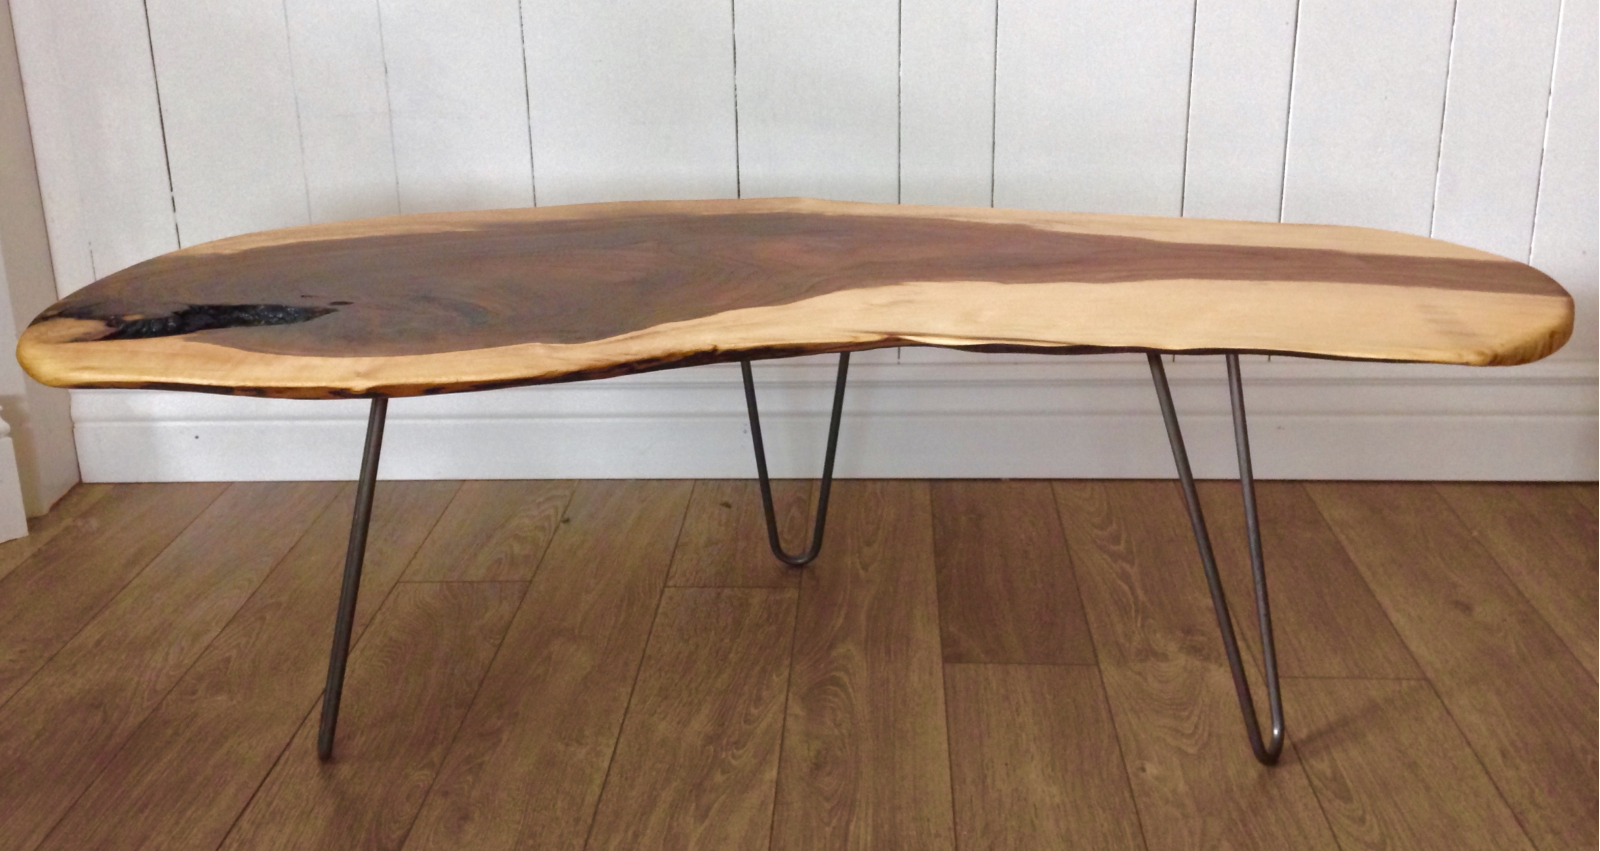 Craft Your Own Artisanal Wood Table U2013 Connie Yang U2013 Medium